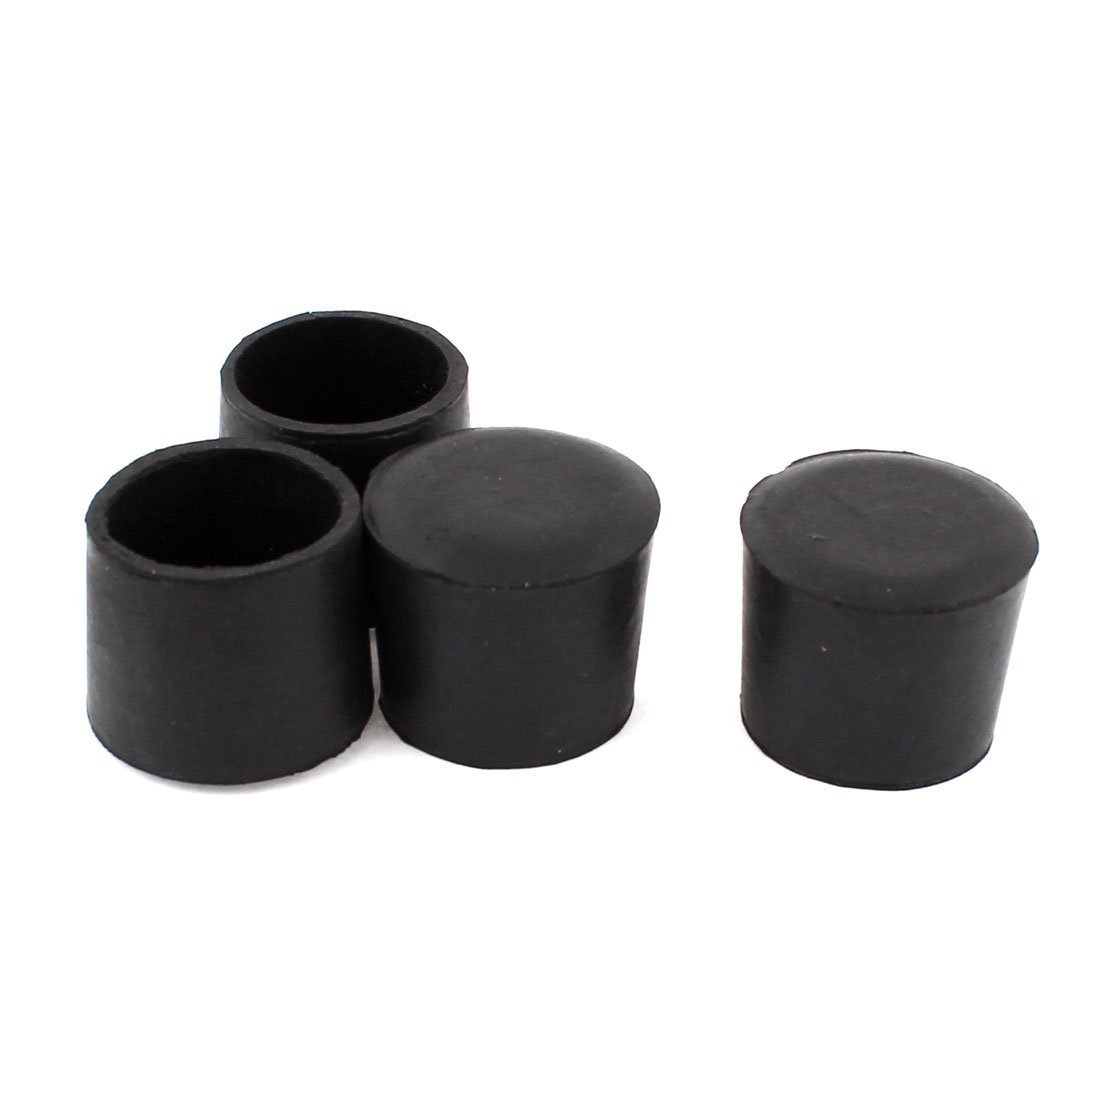 Furniture, Protectors End Cap, Round 38 Mm, 4 Pieces